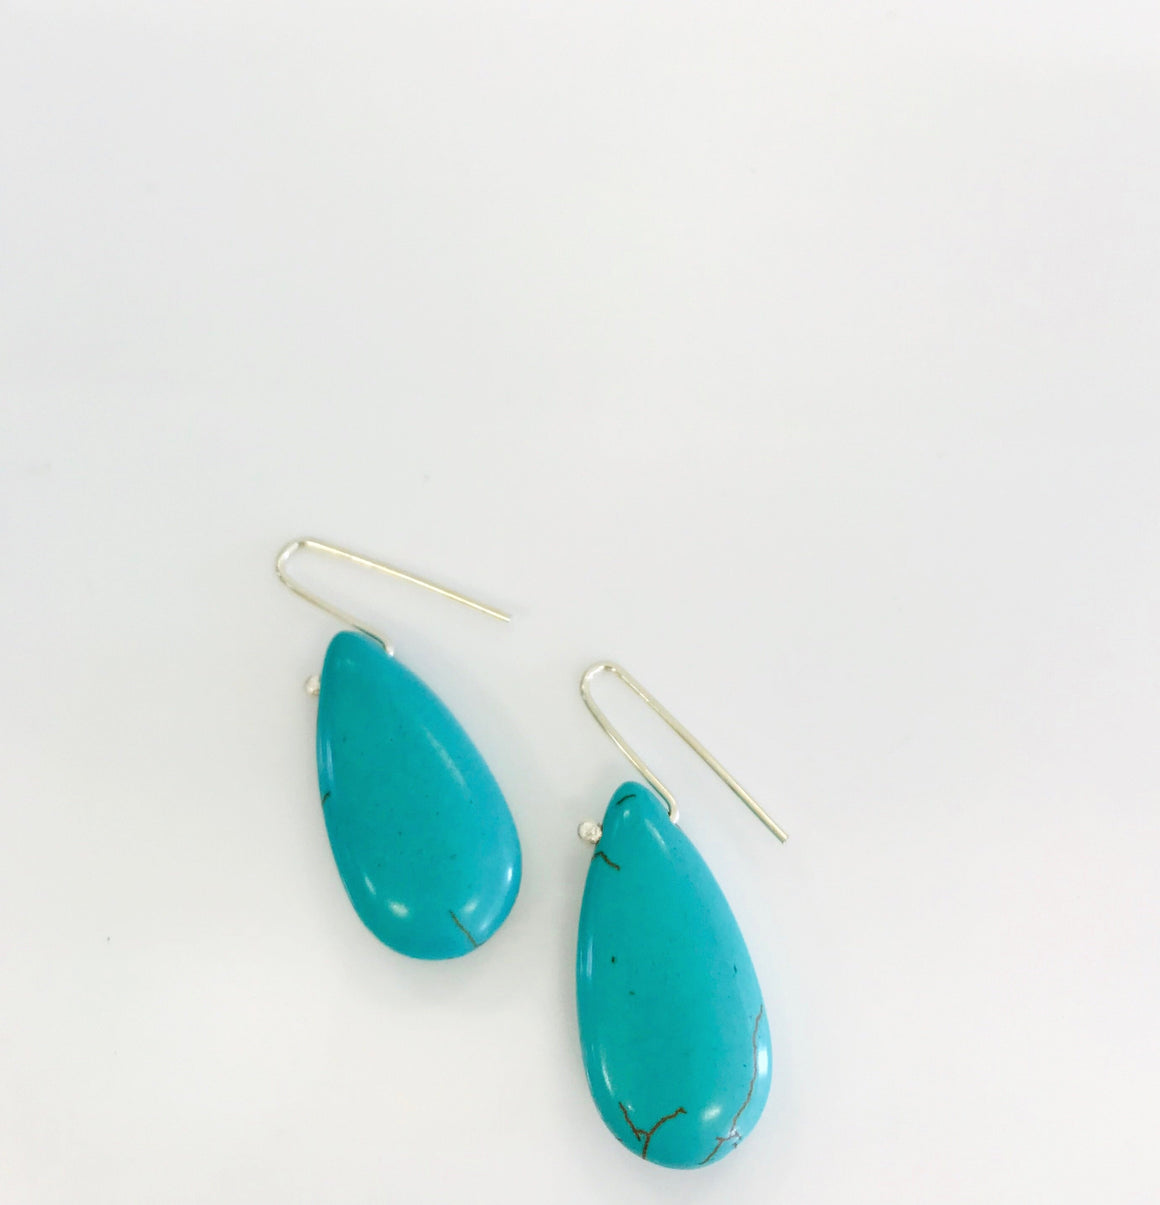 Turquoise teardrops - Connie Dimas Jewellery